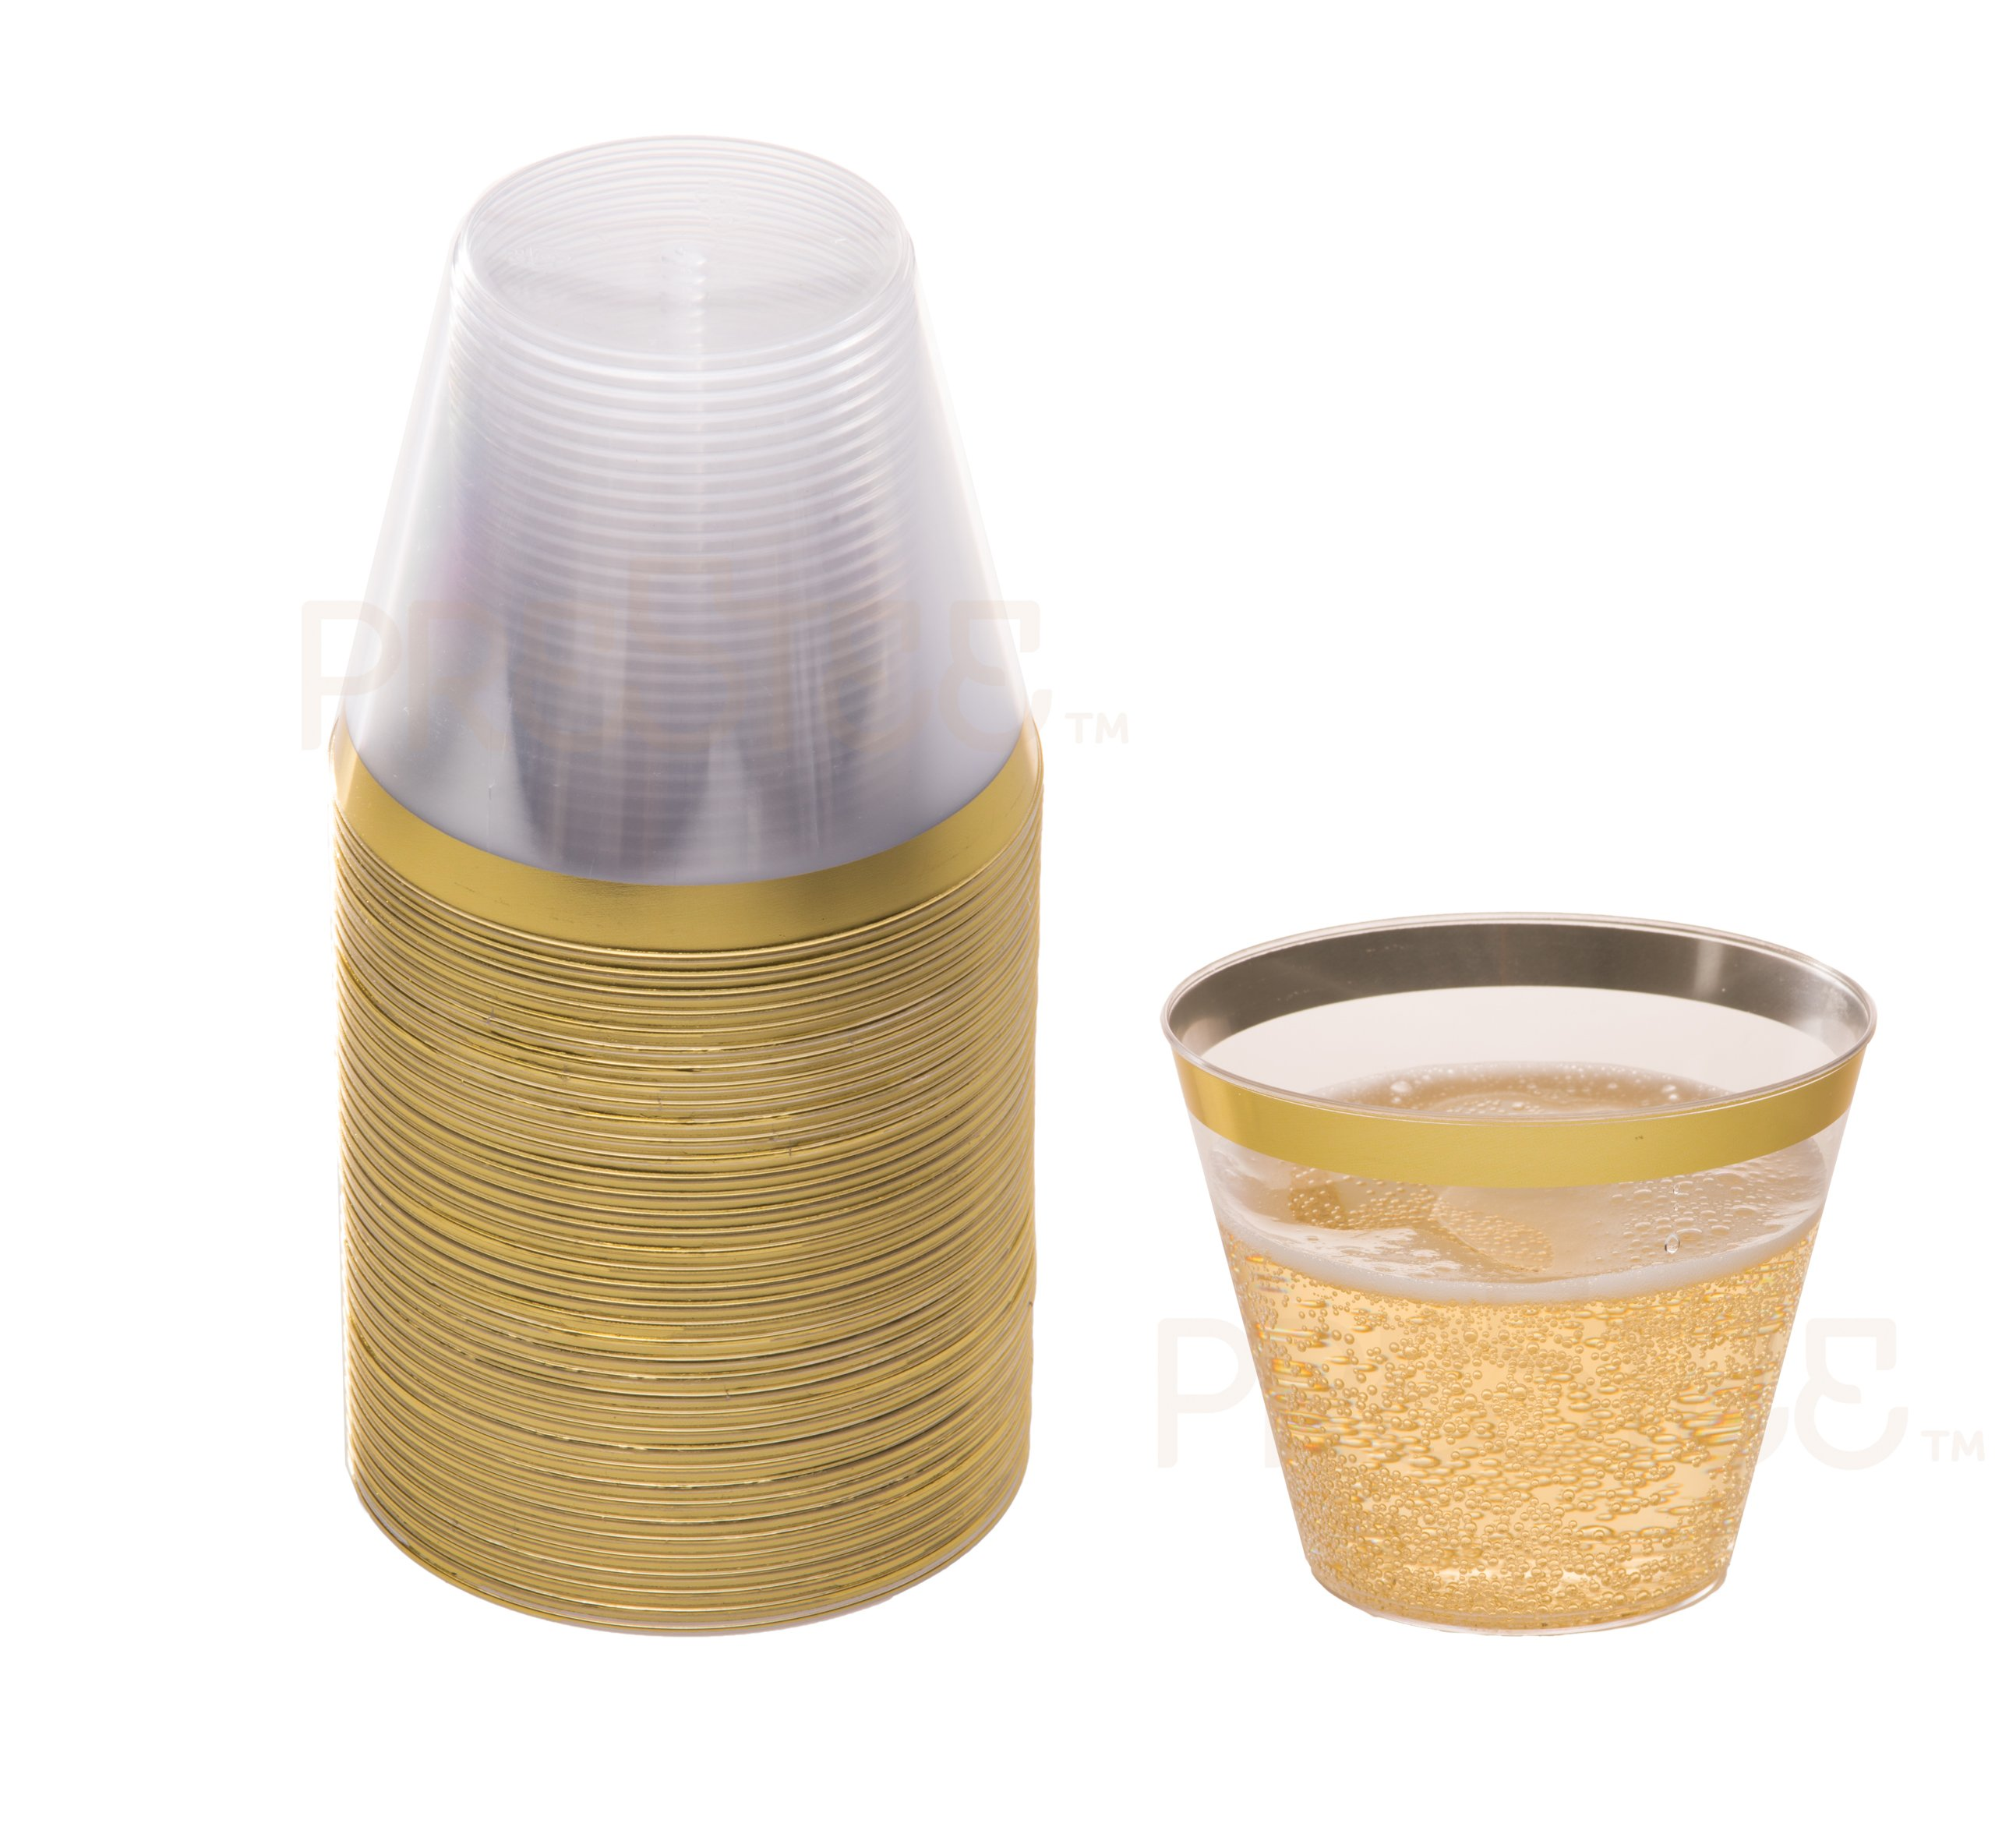 Gold Plastic Clear Cups | 9 oz. 50 Pack | Disposable Party Cups with Gold Rim | Fancy Wedding Tumblers | Elegant Party Supplies & Decorations | Old Fashioned Tumblers [Drinket Collection]